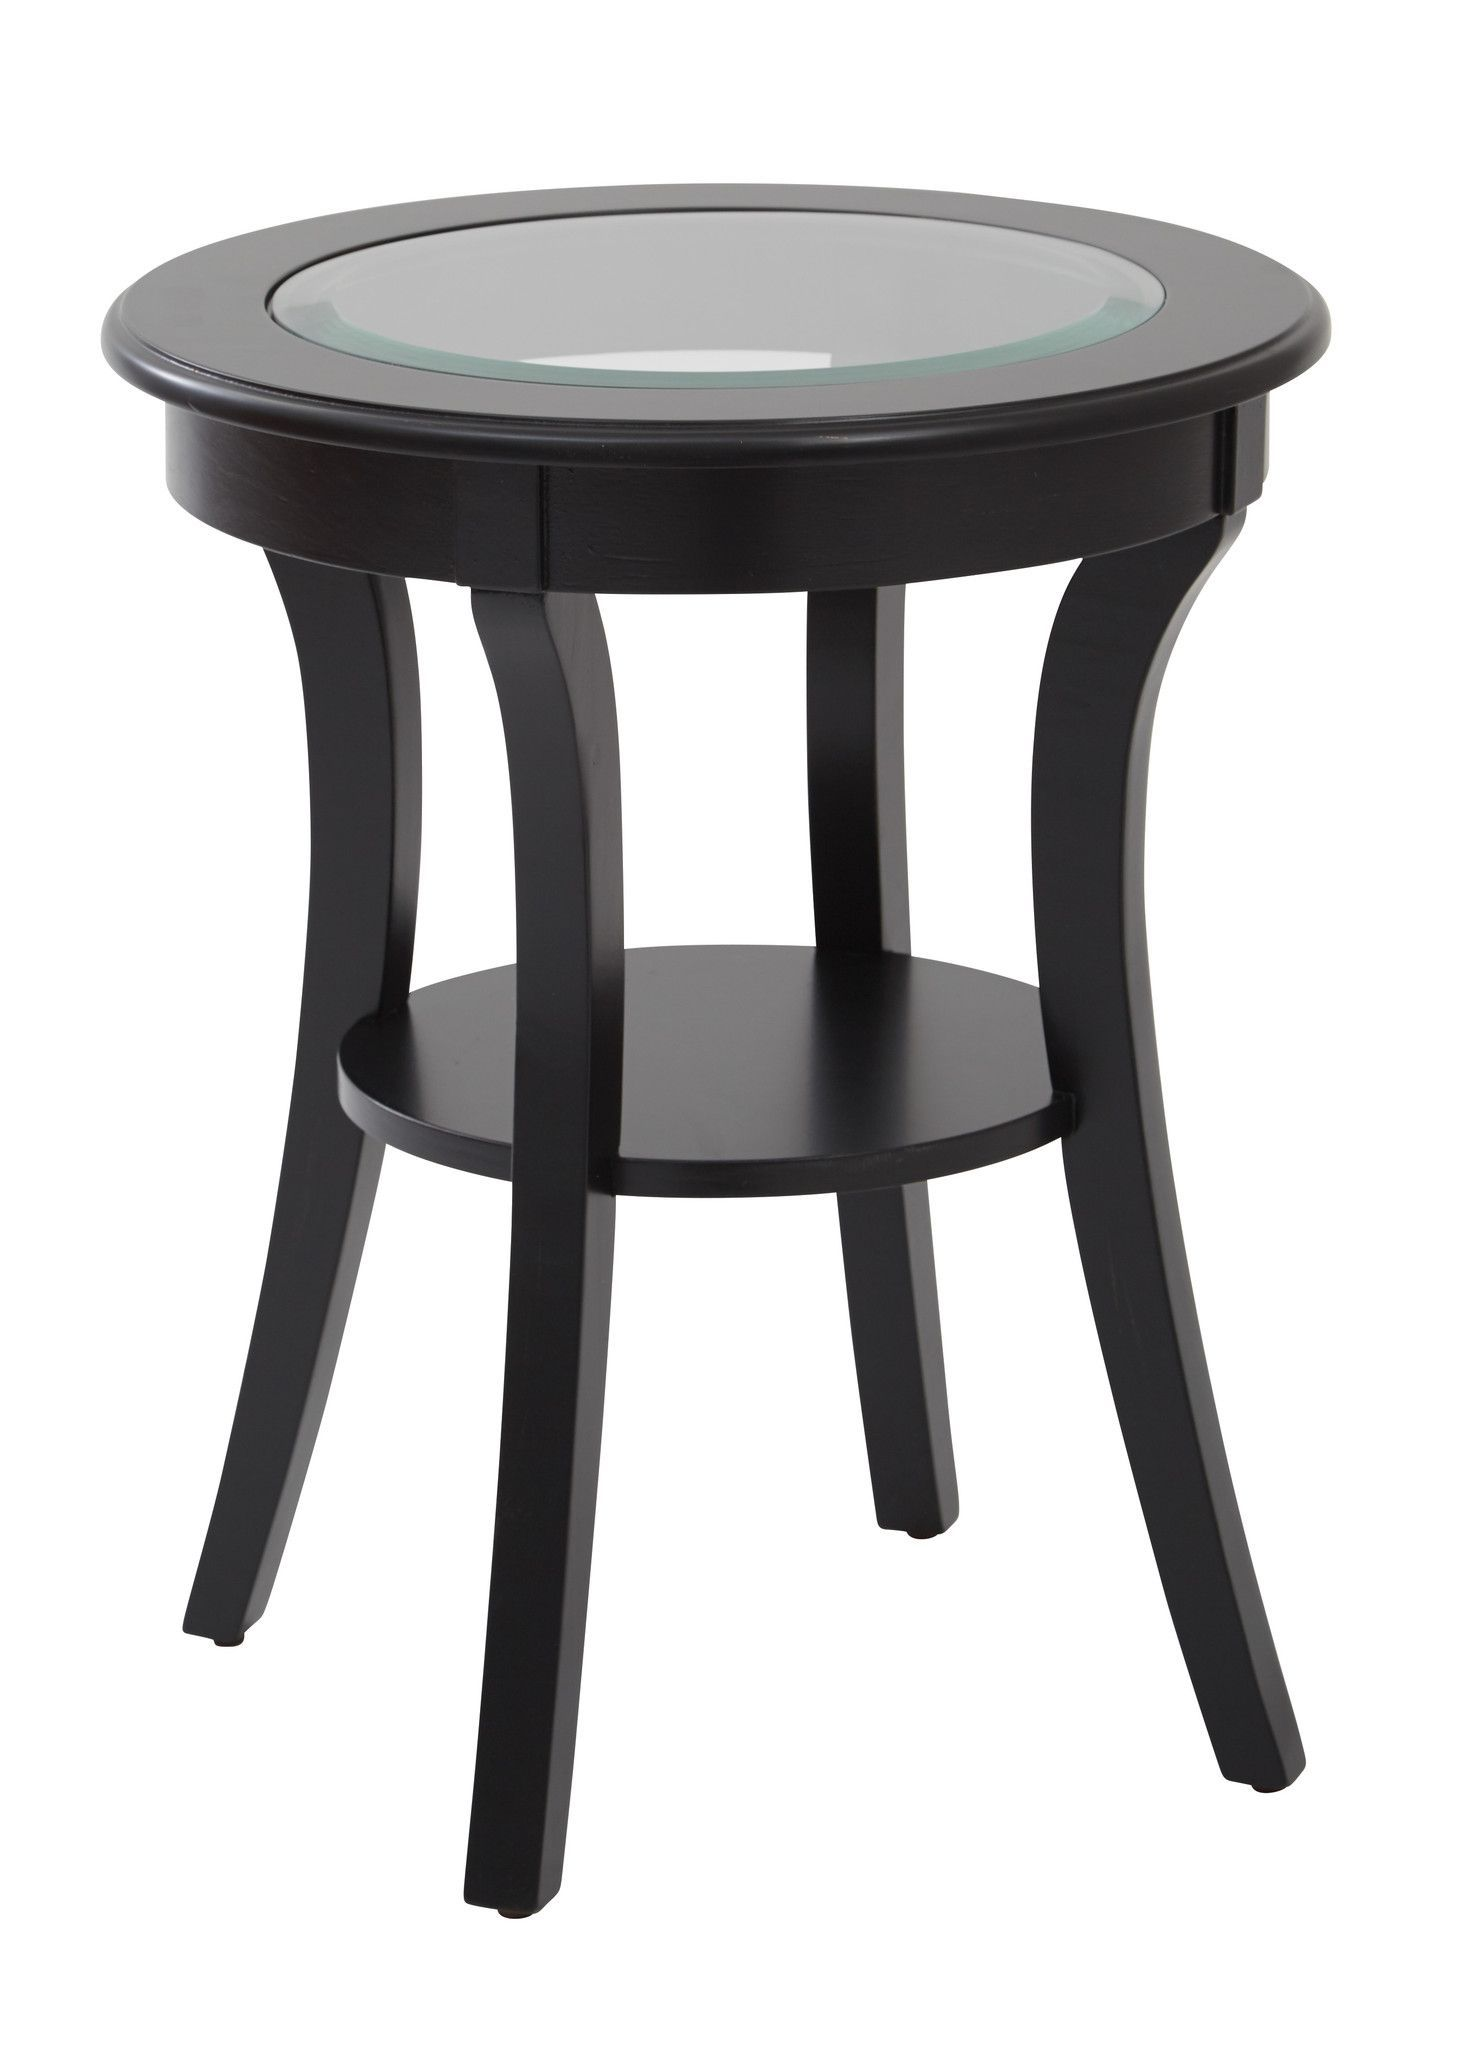 Buy osp designs harper round accent table with glass top and brushed